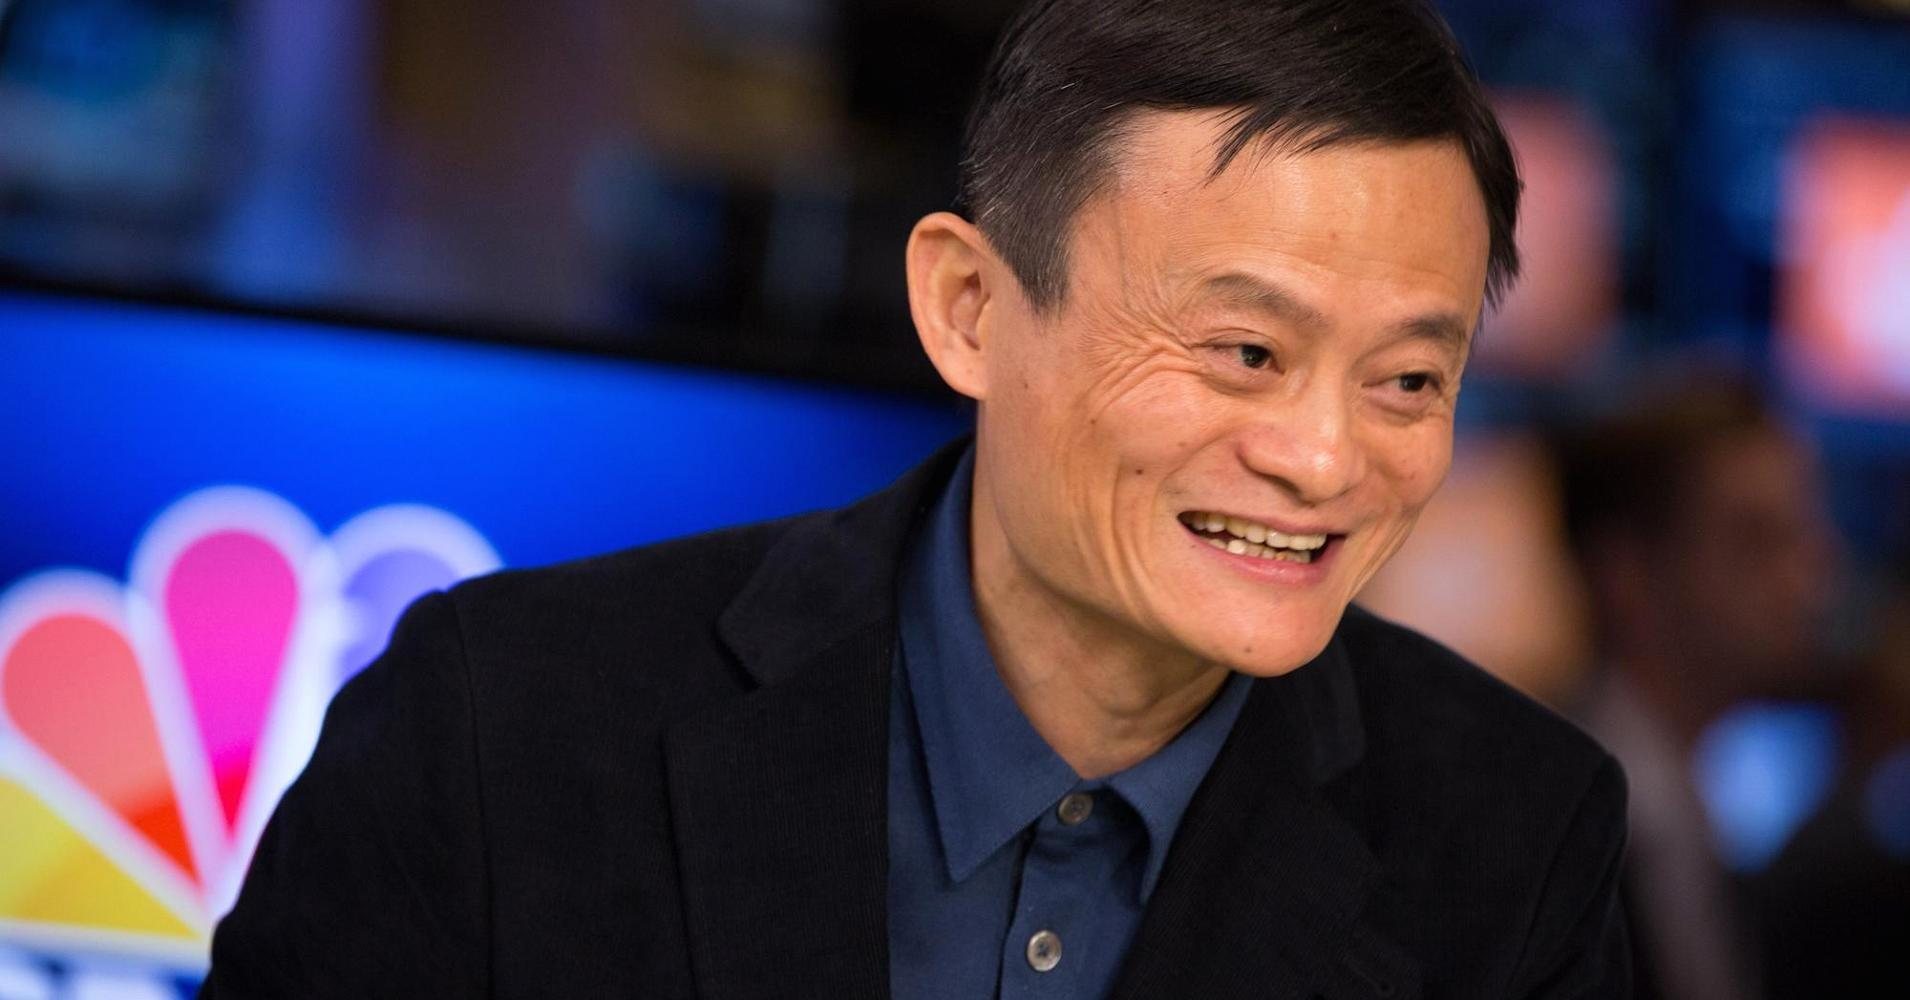 forbes china unveils list of 300 top innovators - HD1910×1000